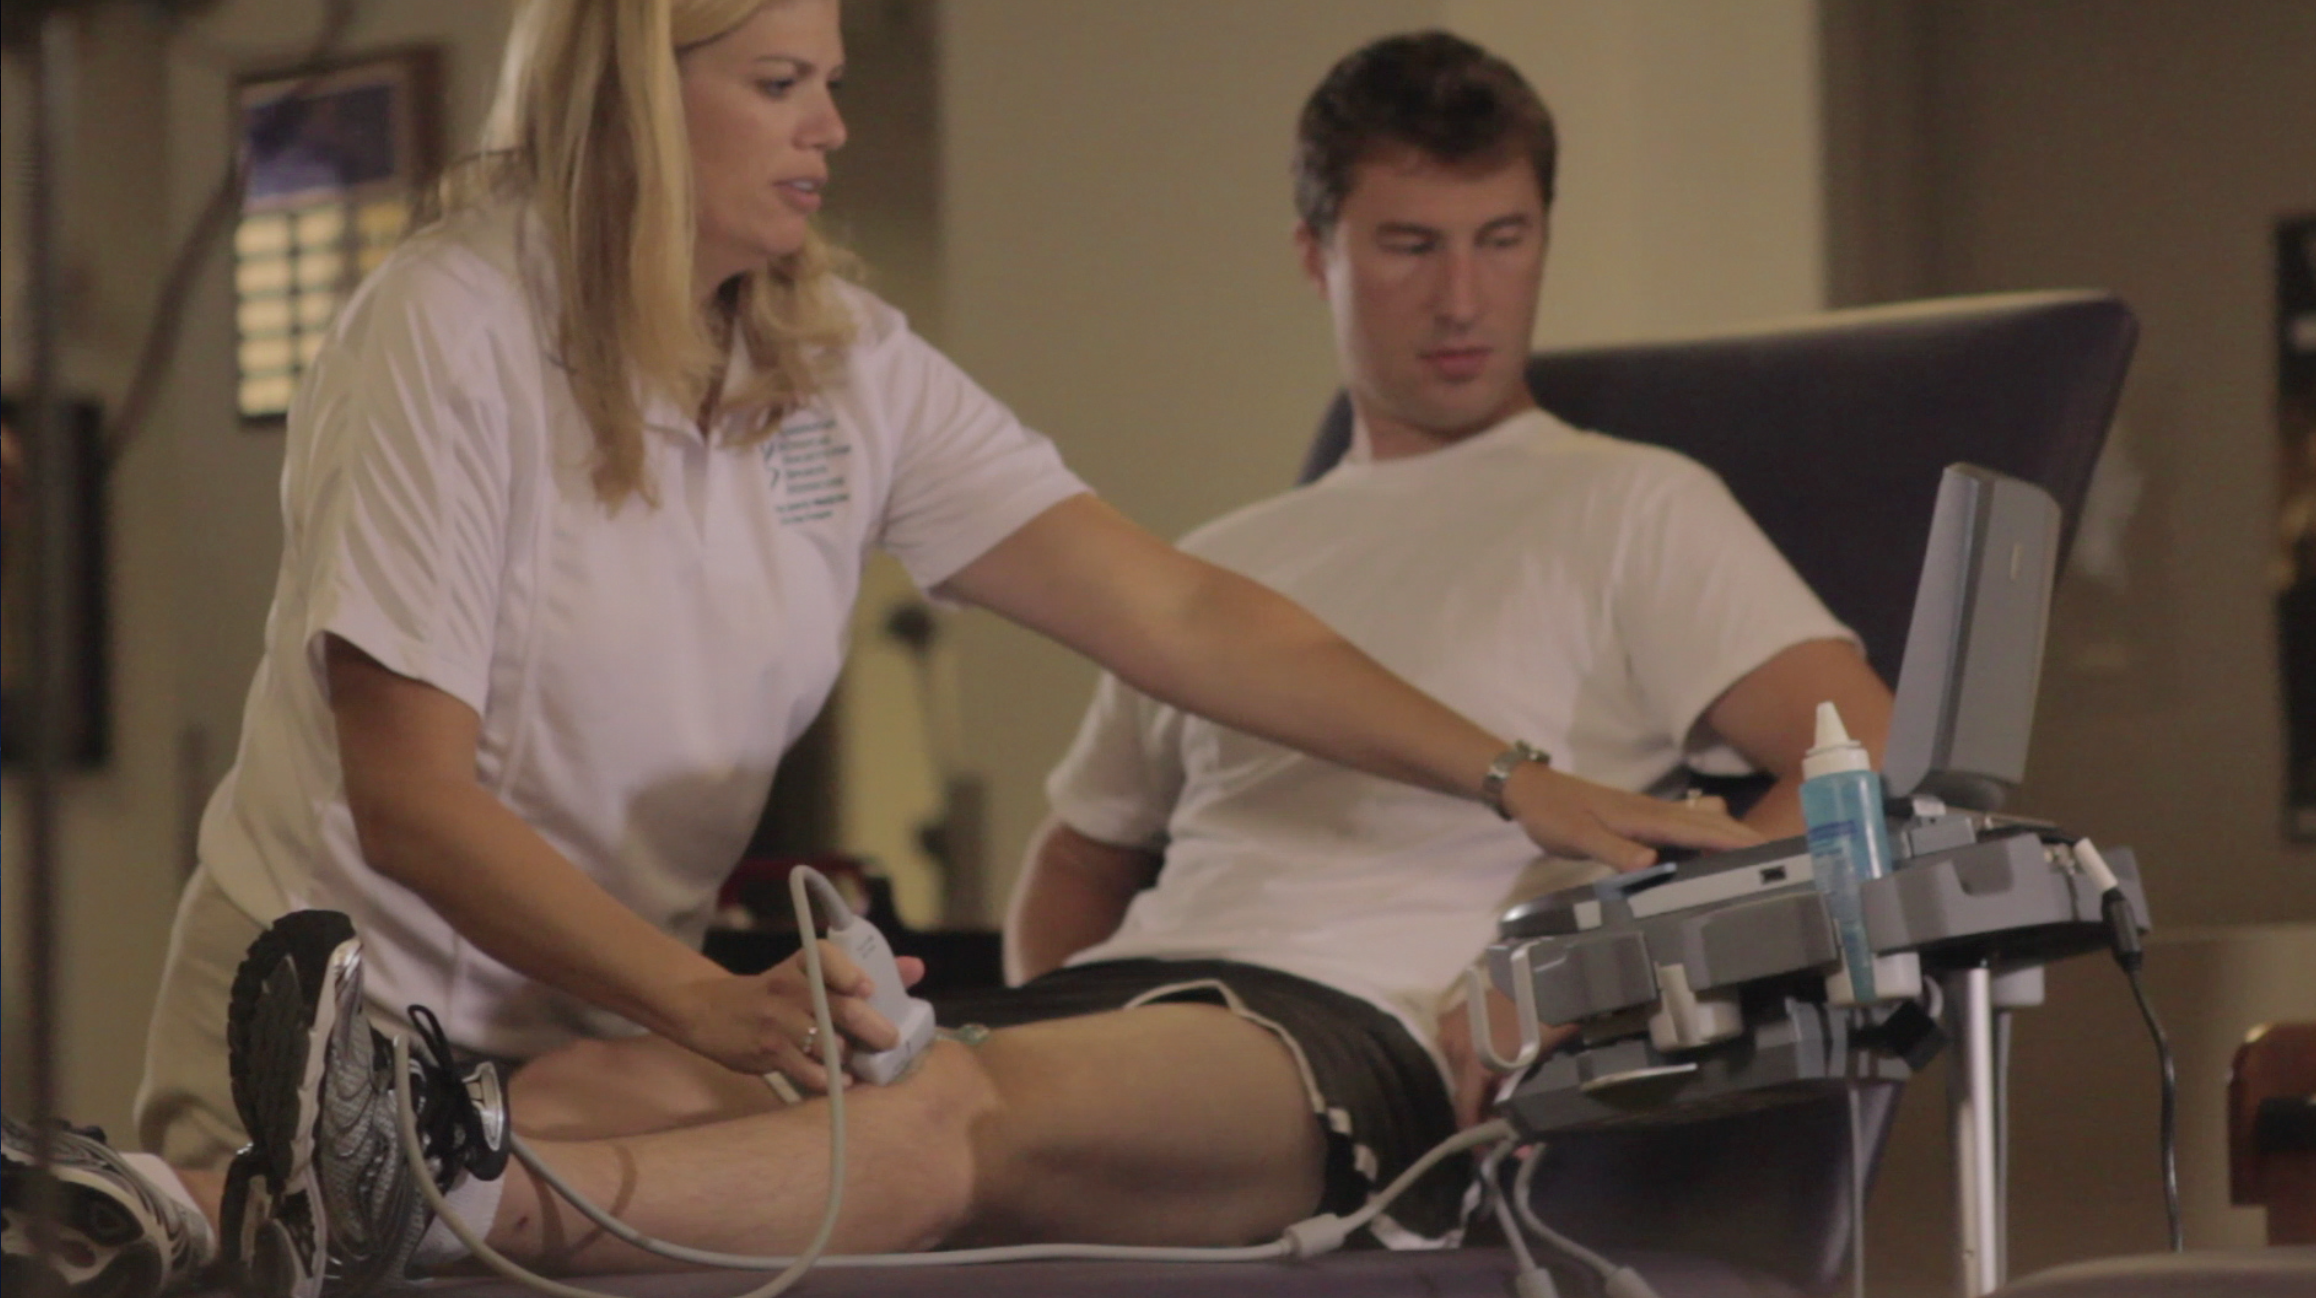 SonoSite ultrasound for MSK and Sports Medicine